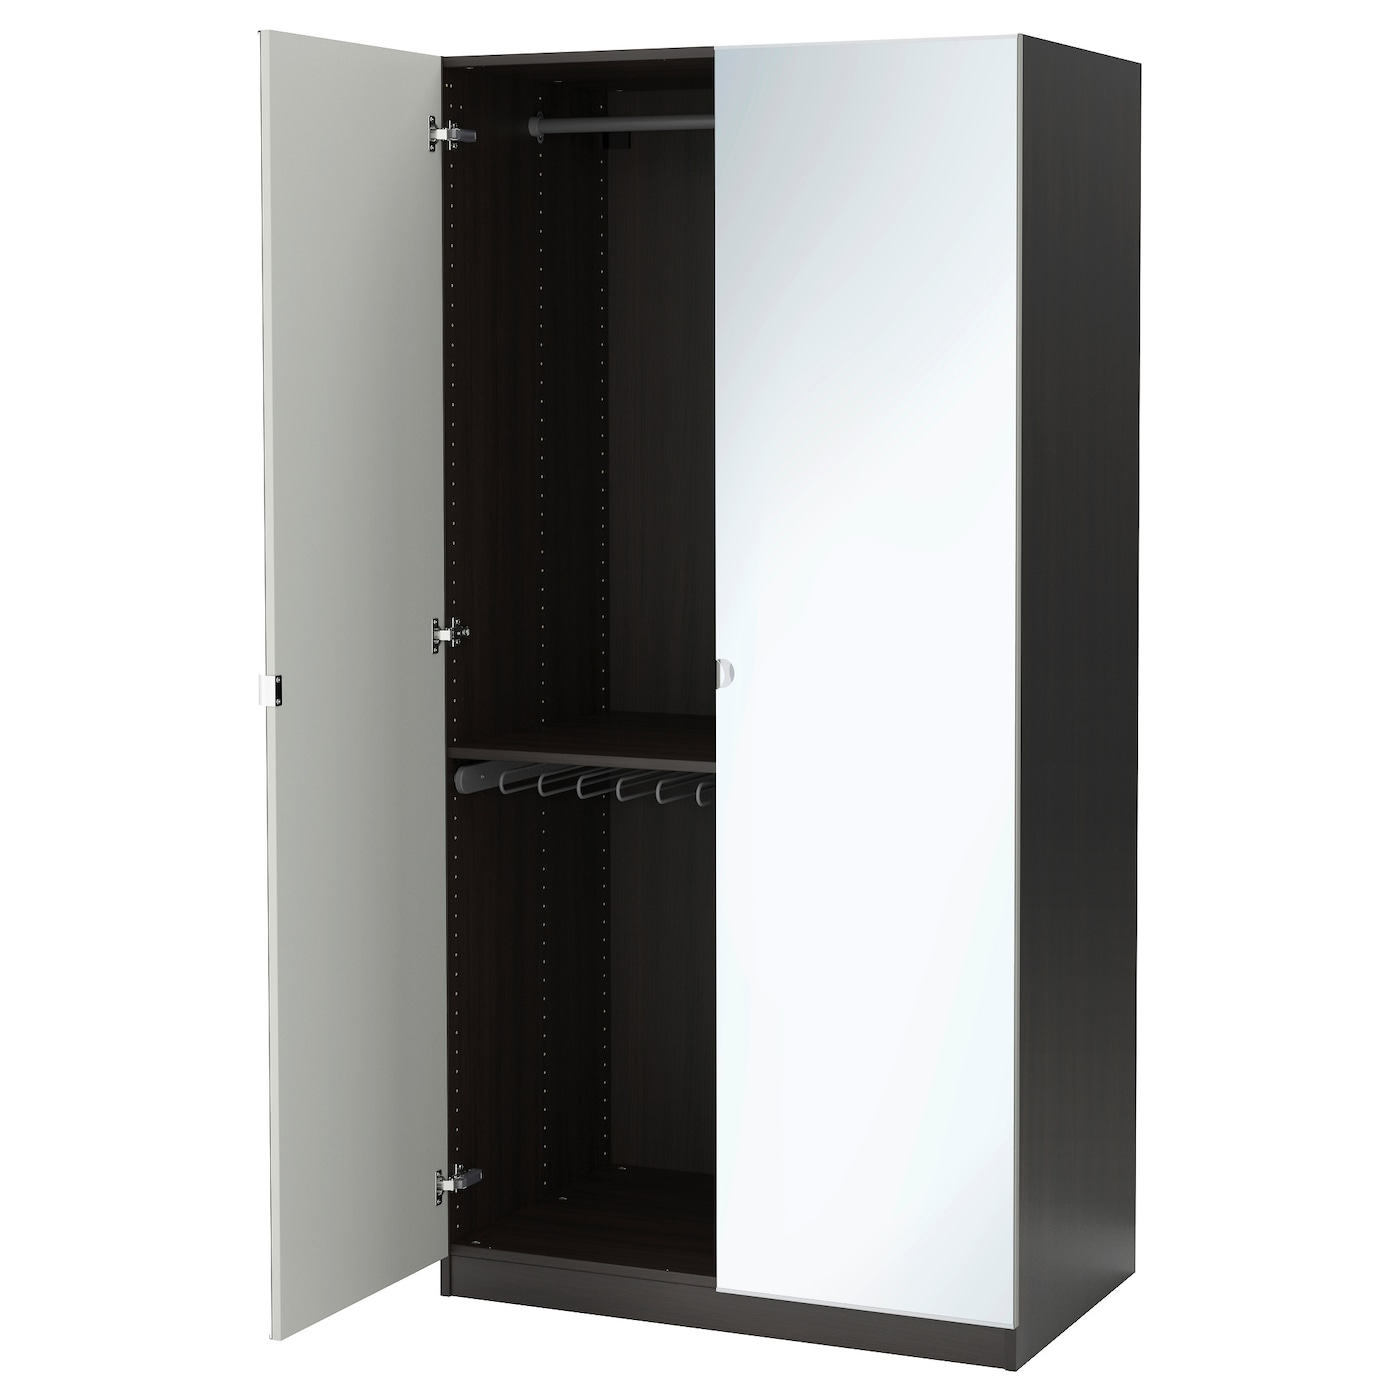 pax armoire penderie brun noir vikedal miroir 100x60x201. Black Bedroom Furniture Sets. Home Design Ideas